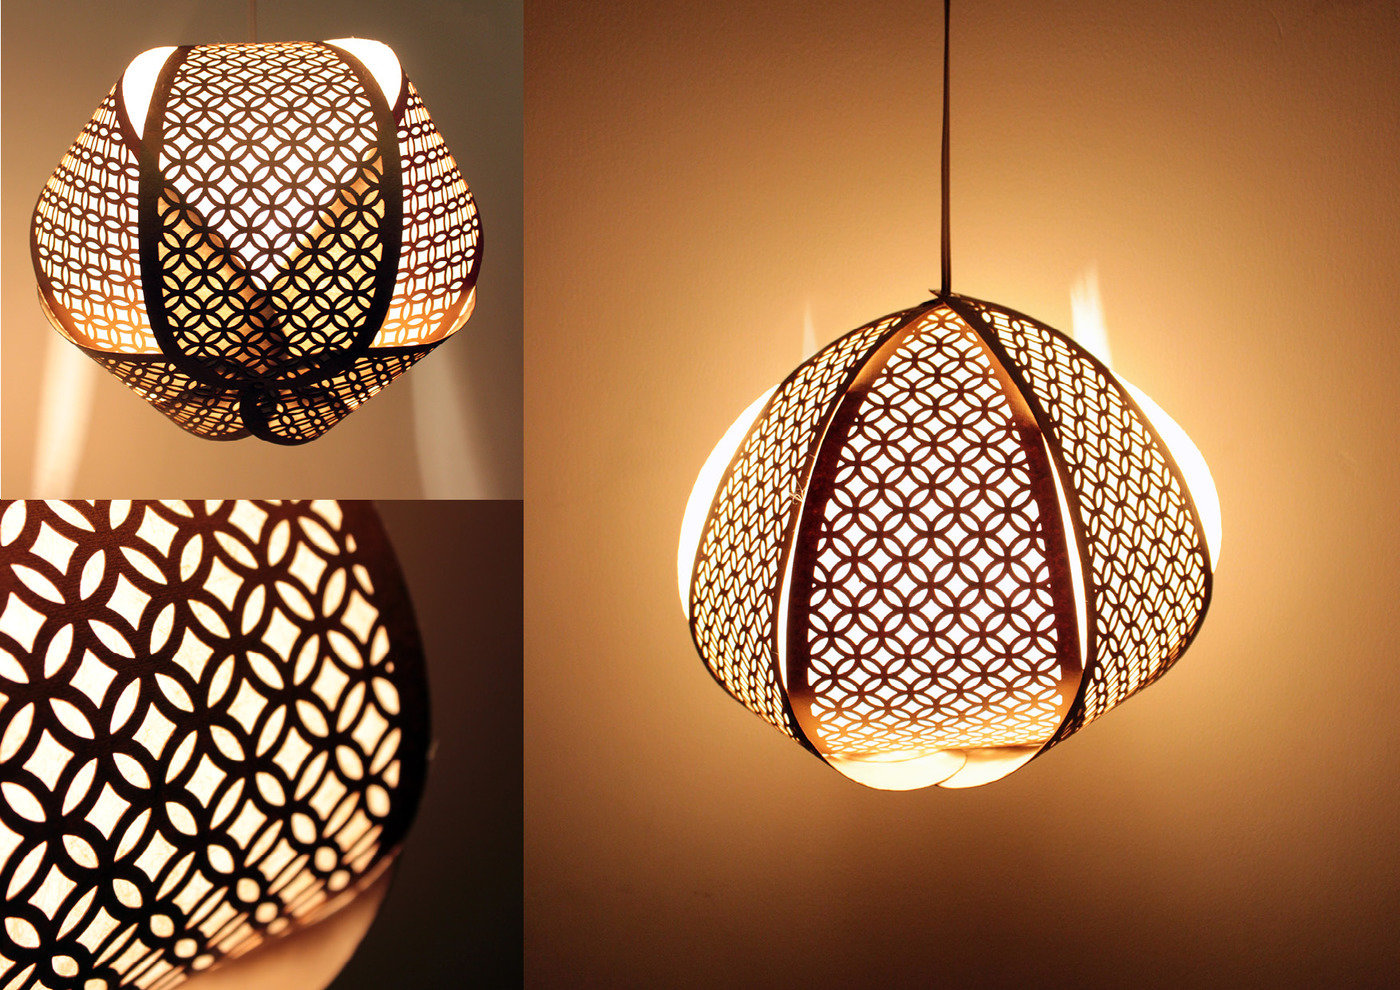 Paper lighting home decor products for diwali by priya pakad at the petals have a laser cut jaali pattern layered from behind with a textured handmade paper the design was explored in two different sizes large pendant arubaitofo Gallery